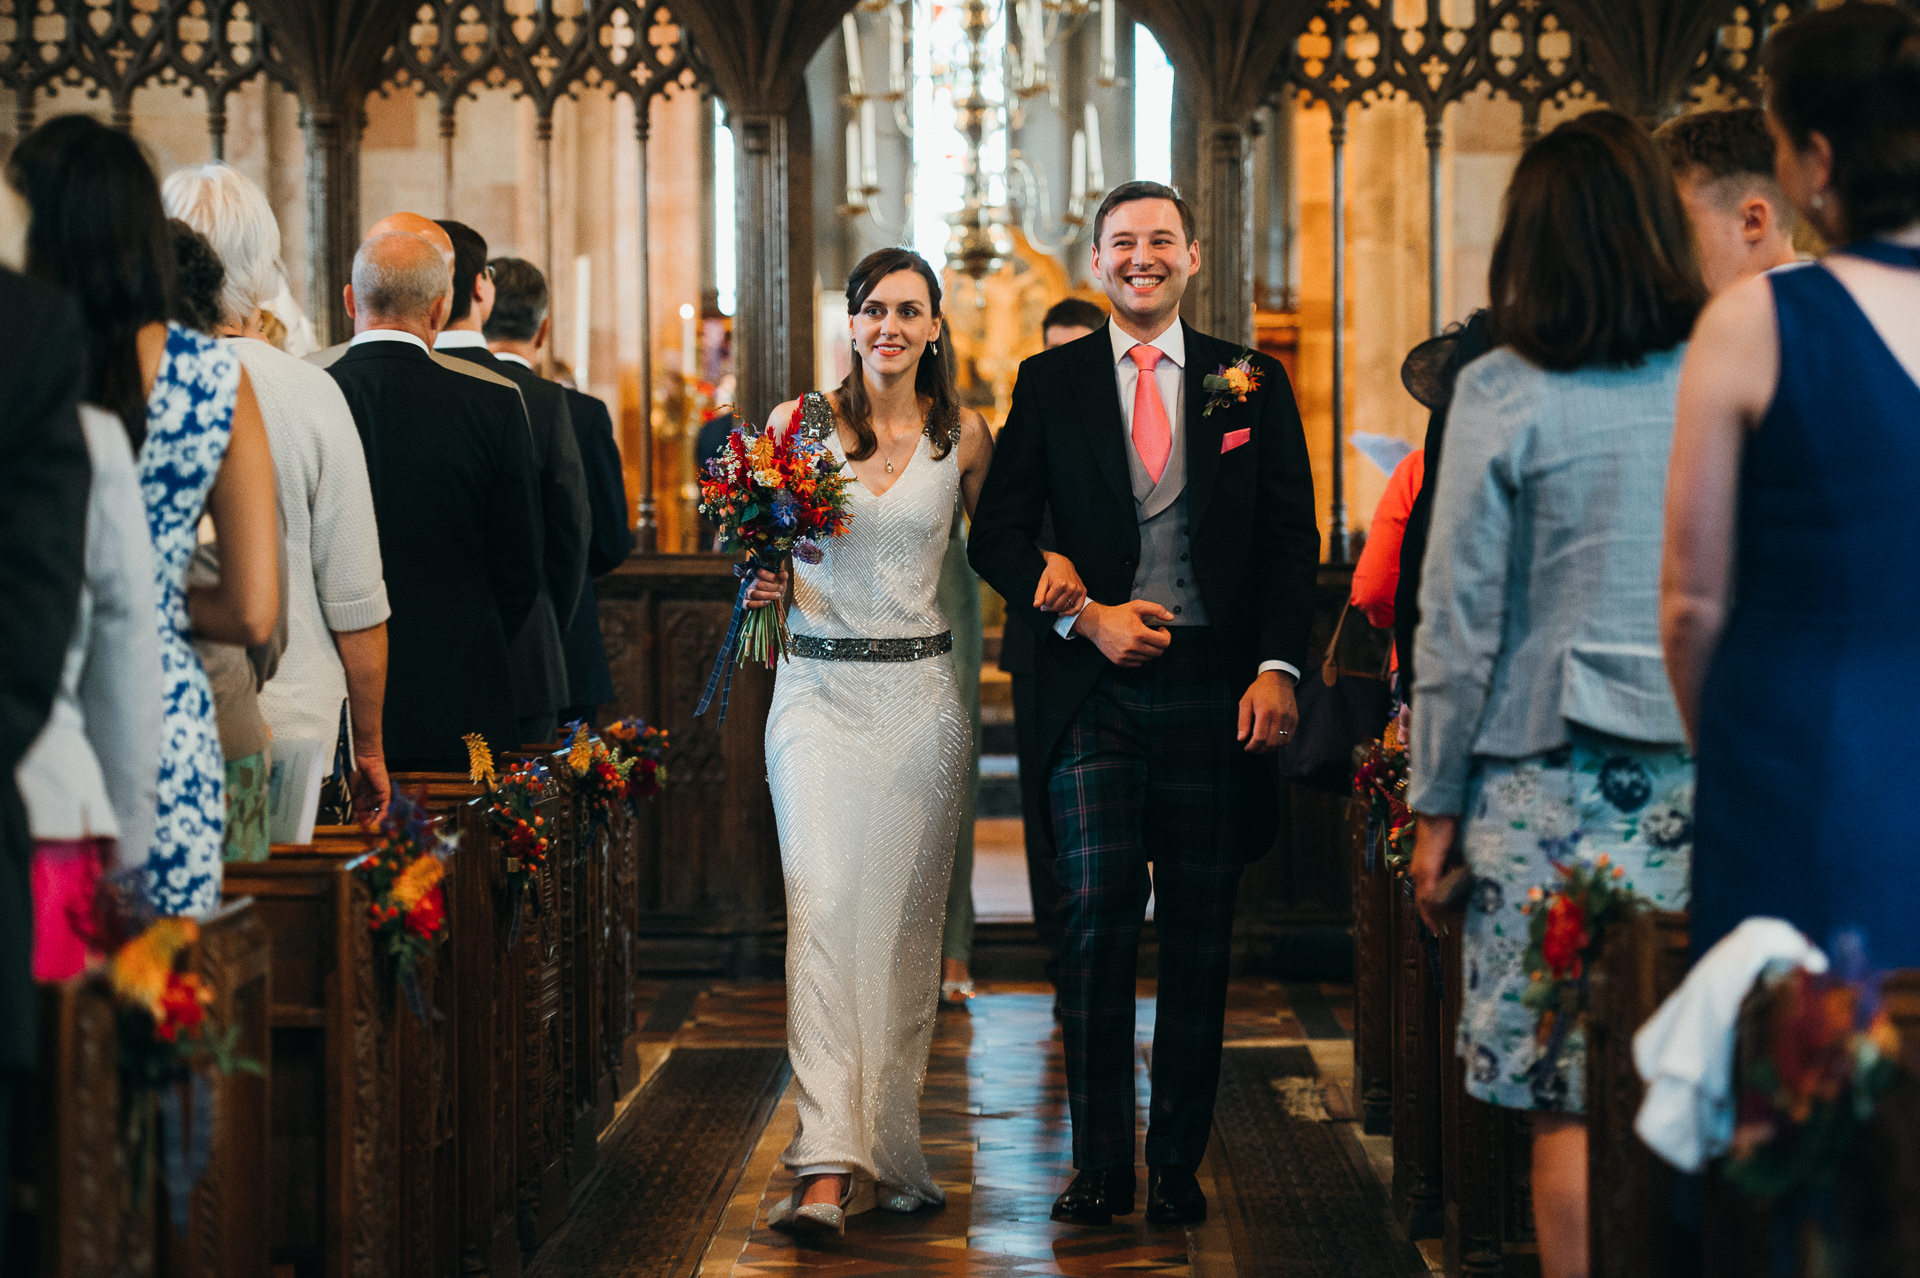 Dunster church wedding just married